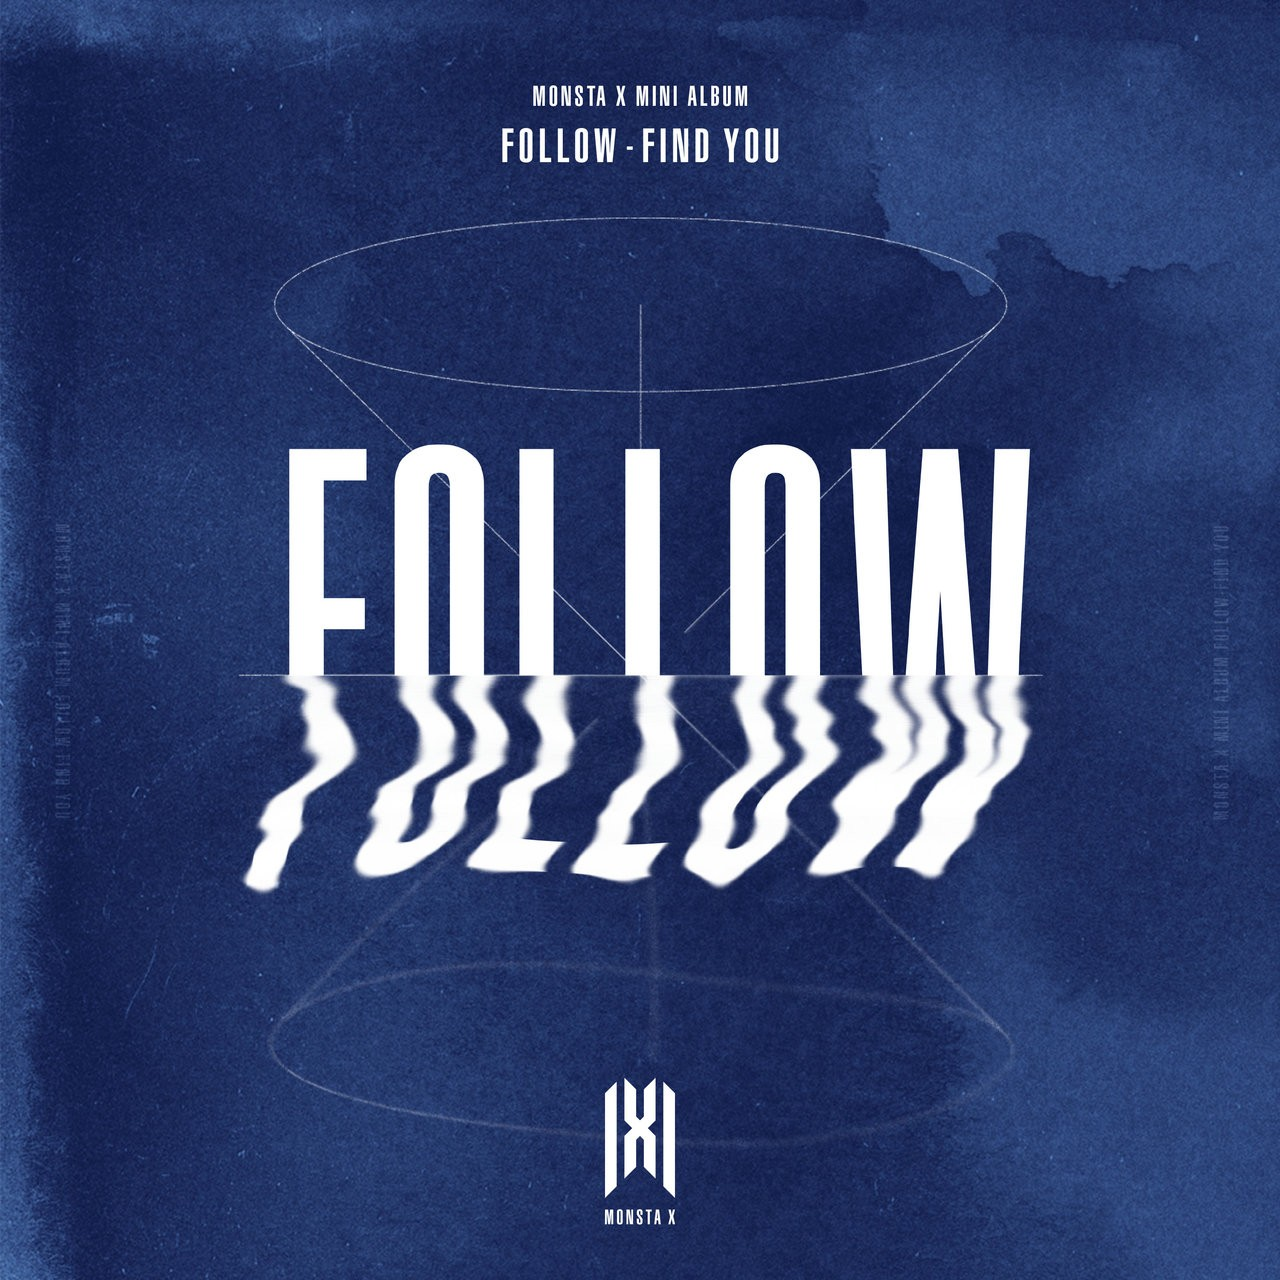 MONSTA X – FOLLOW – FIND YOU [FLAC+ MP3 320 / CD] [2019.10.28]